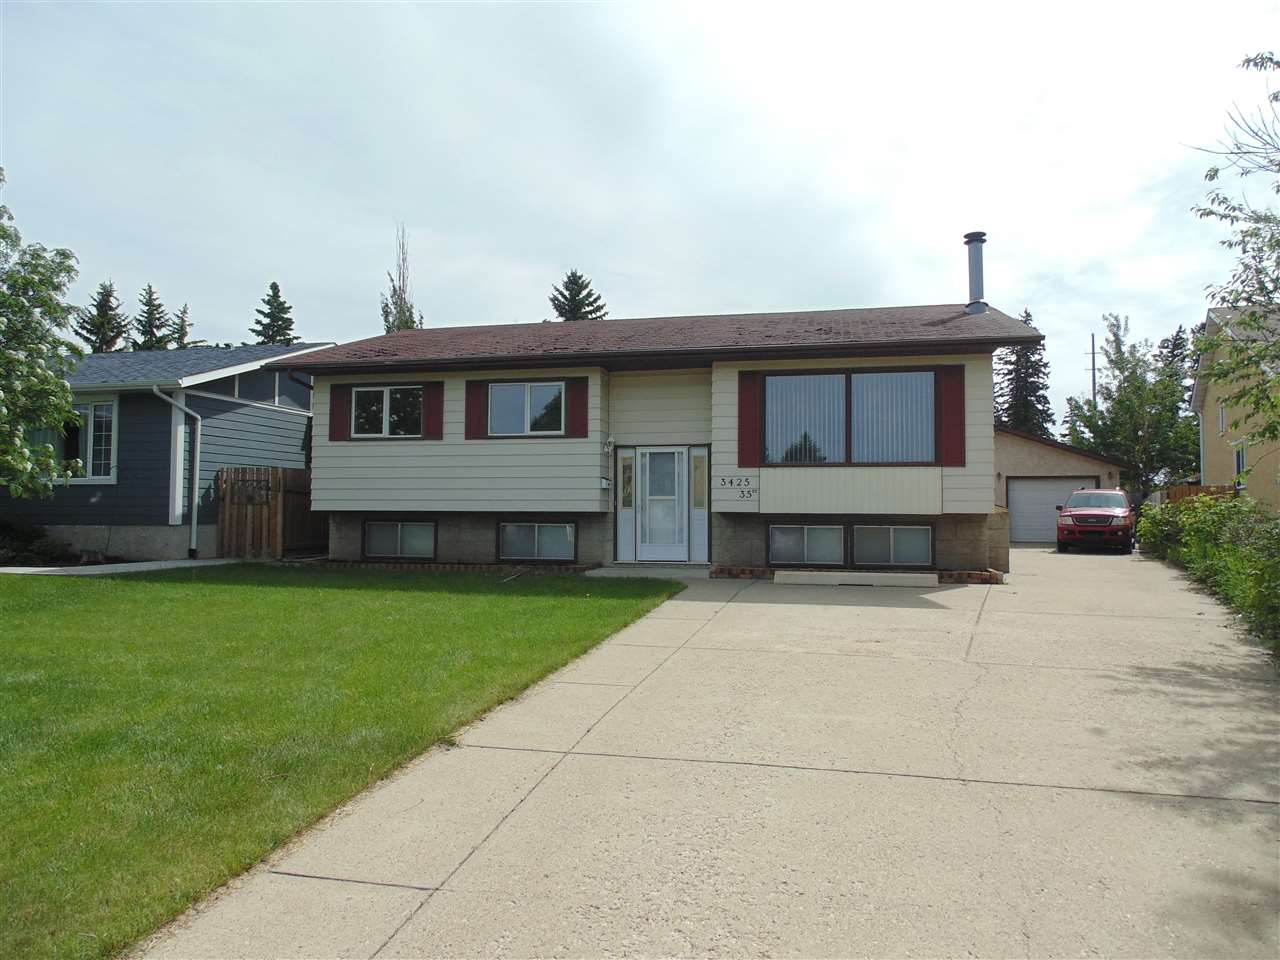 Main Photo: 3425 35 Street in Edmonton: Zone 29 House for sale : MLS(r) # E4067599